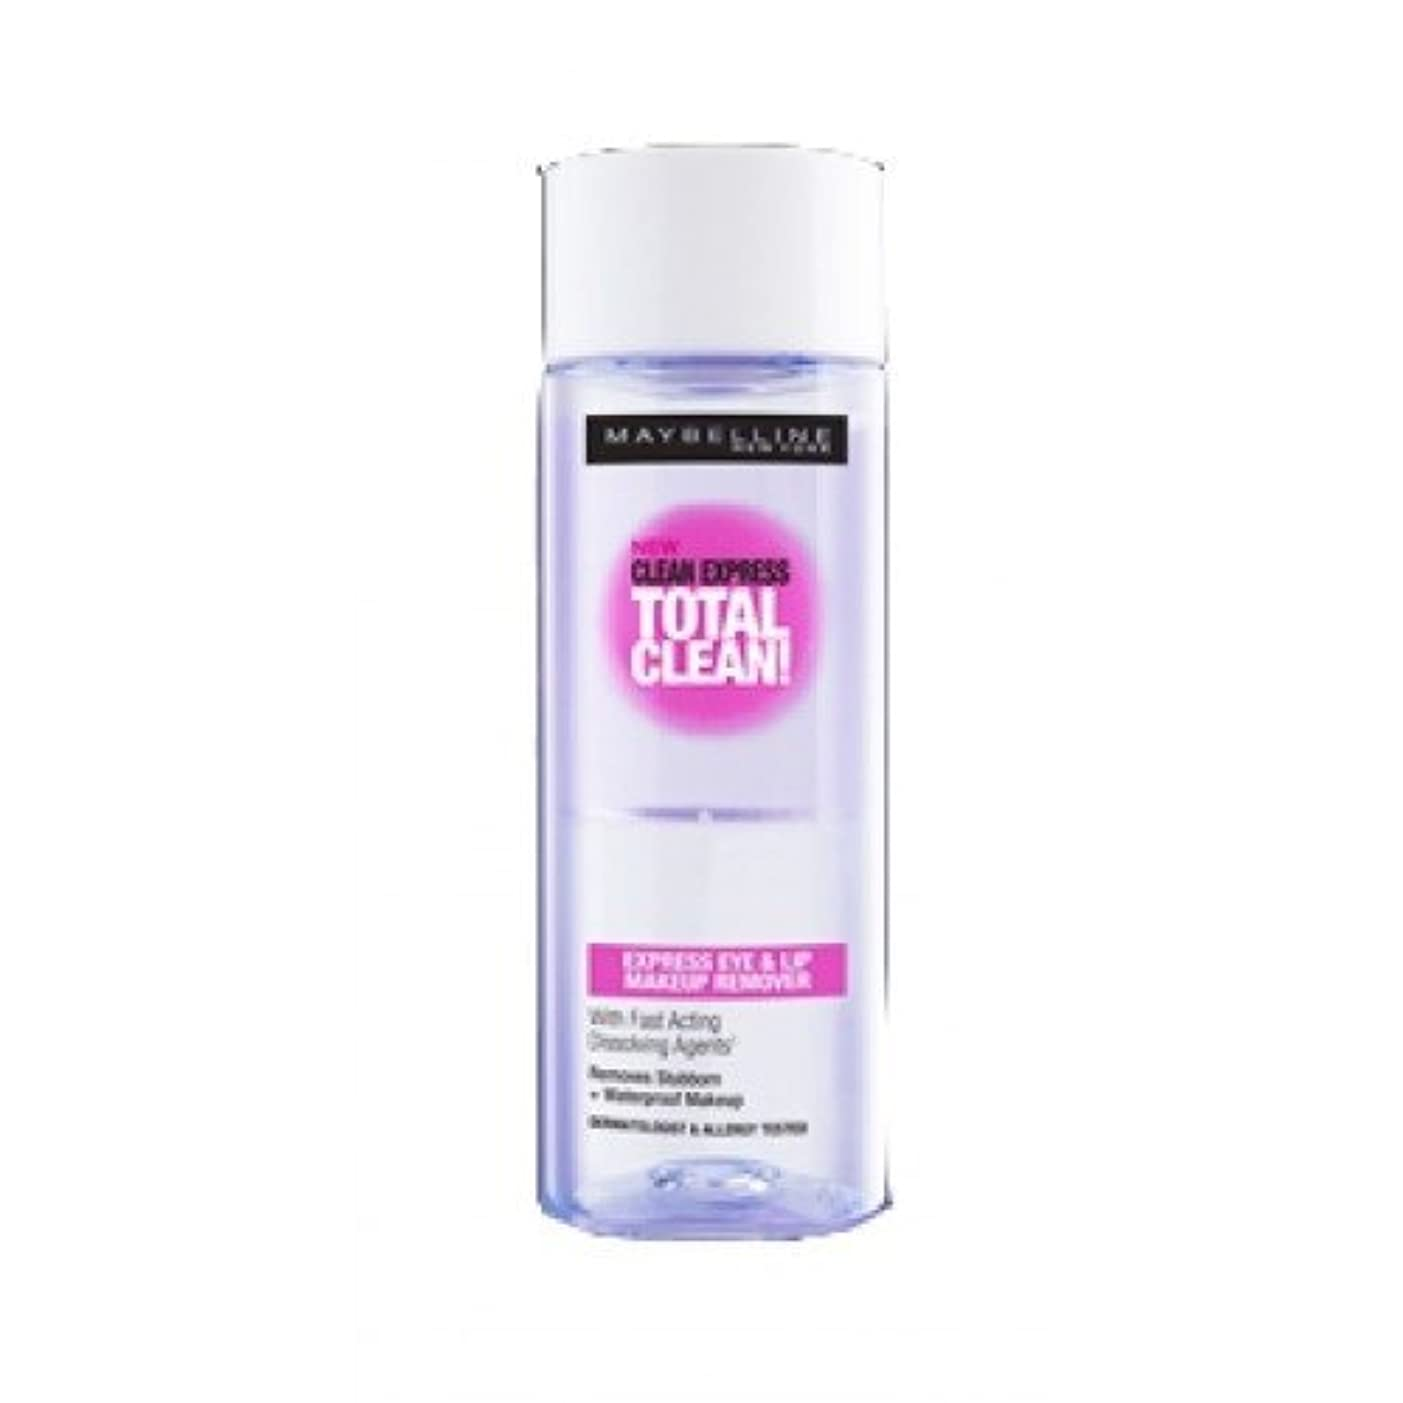 イソギンチャク意志に反するMaybelline Clean Express Total Clean Make-Up Remover, 70 ml